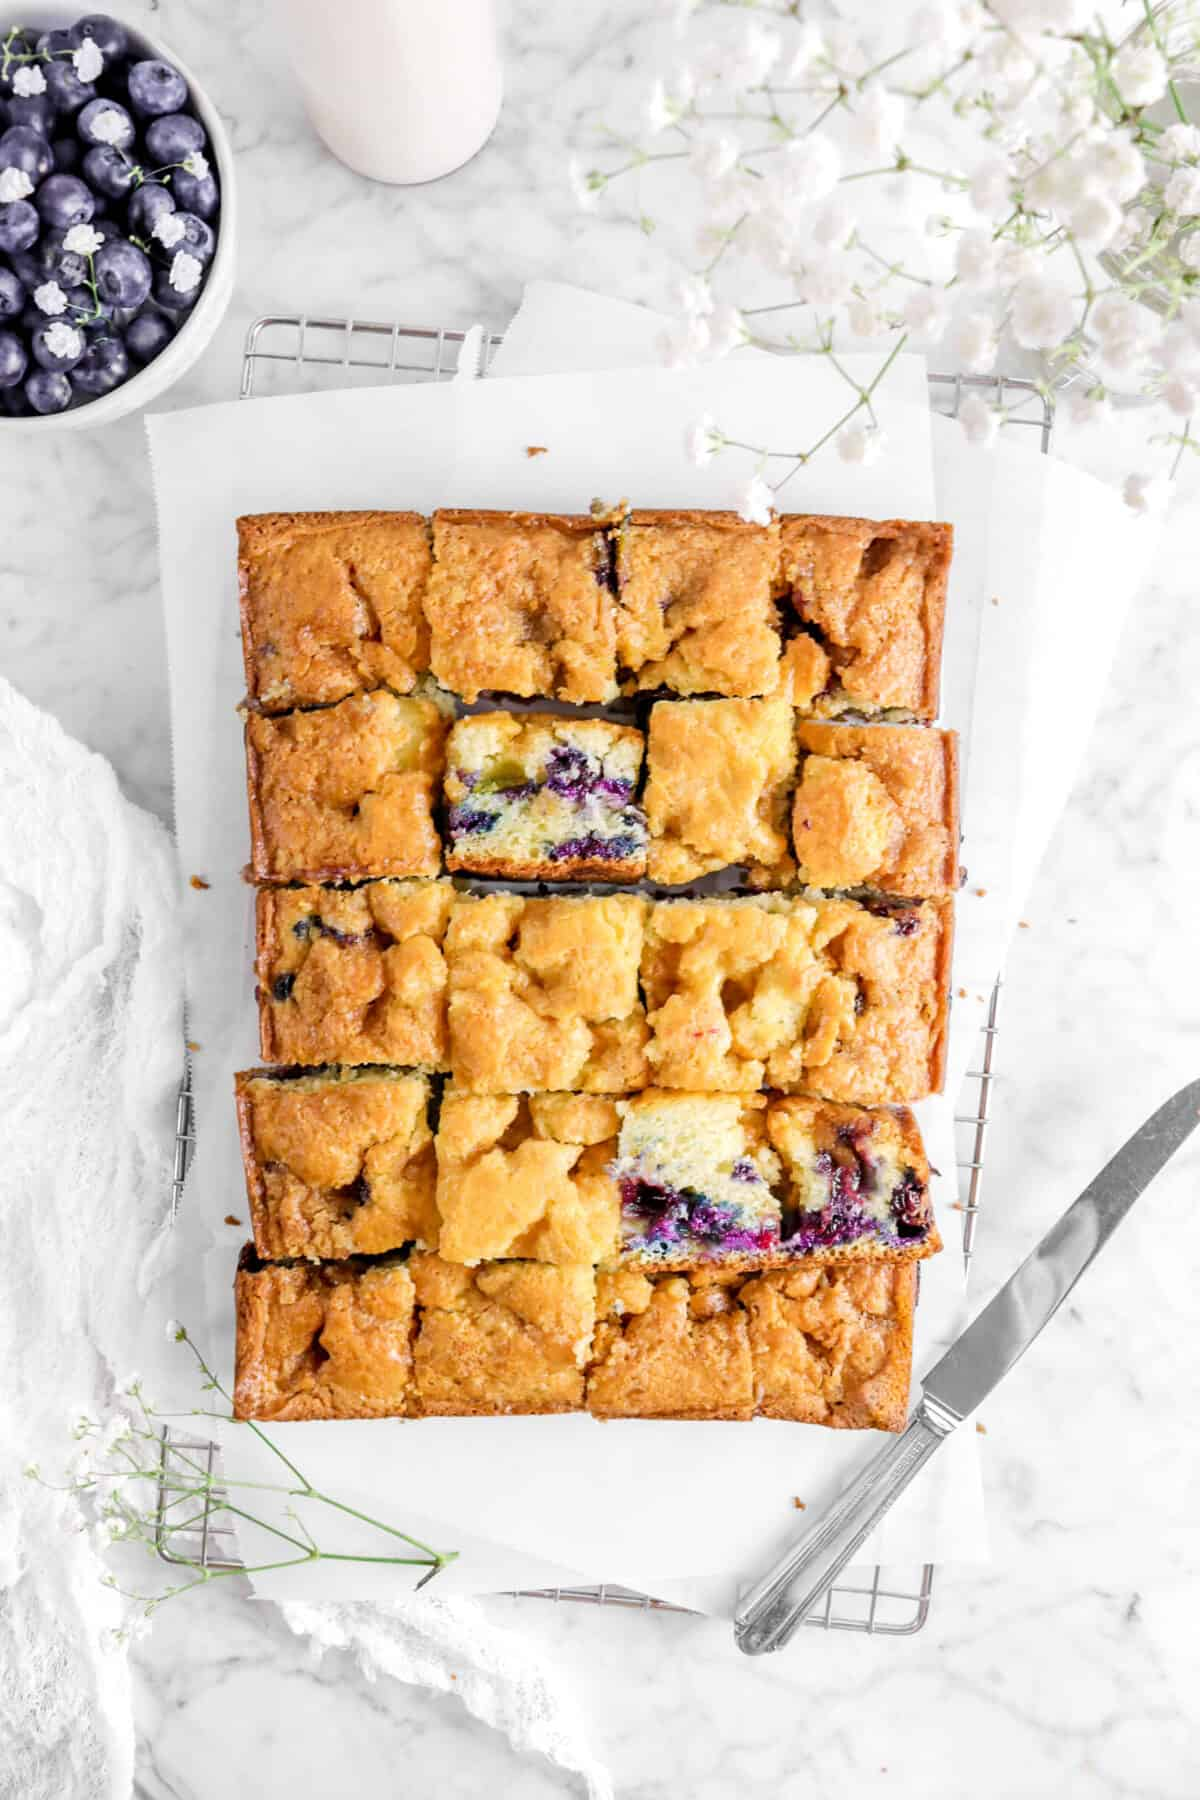 overhead shot of blueberry buckle on wire cooling rack with flowers, three sliced turned on their side, blueberries and a knife